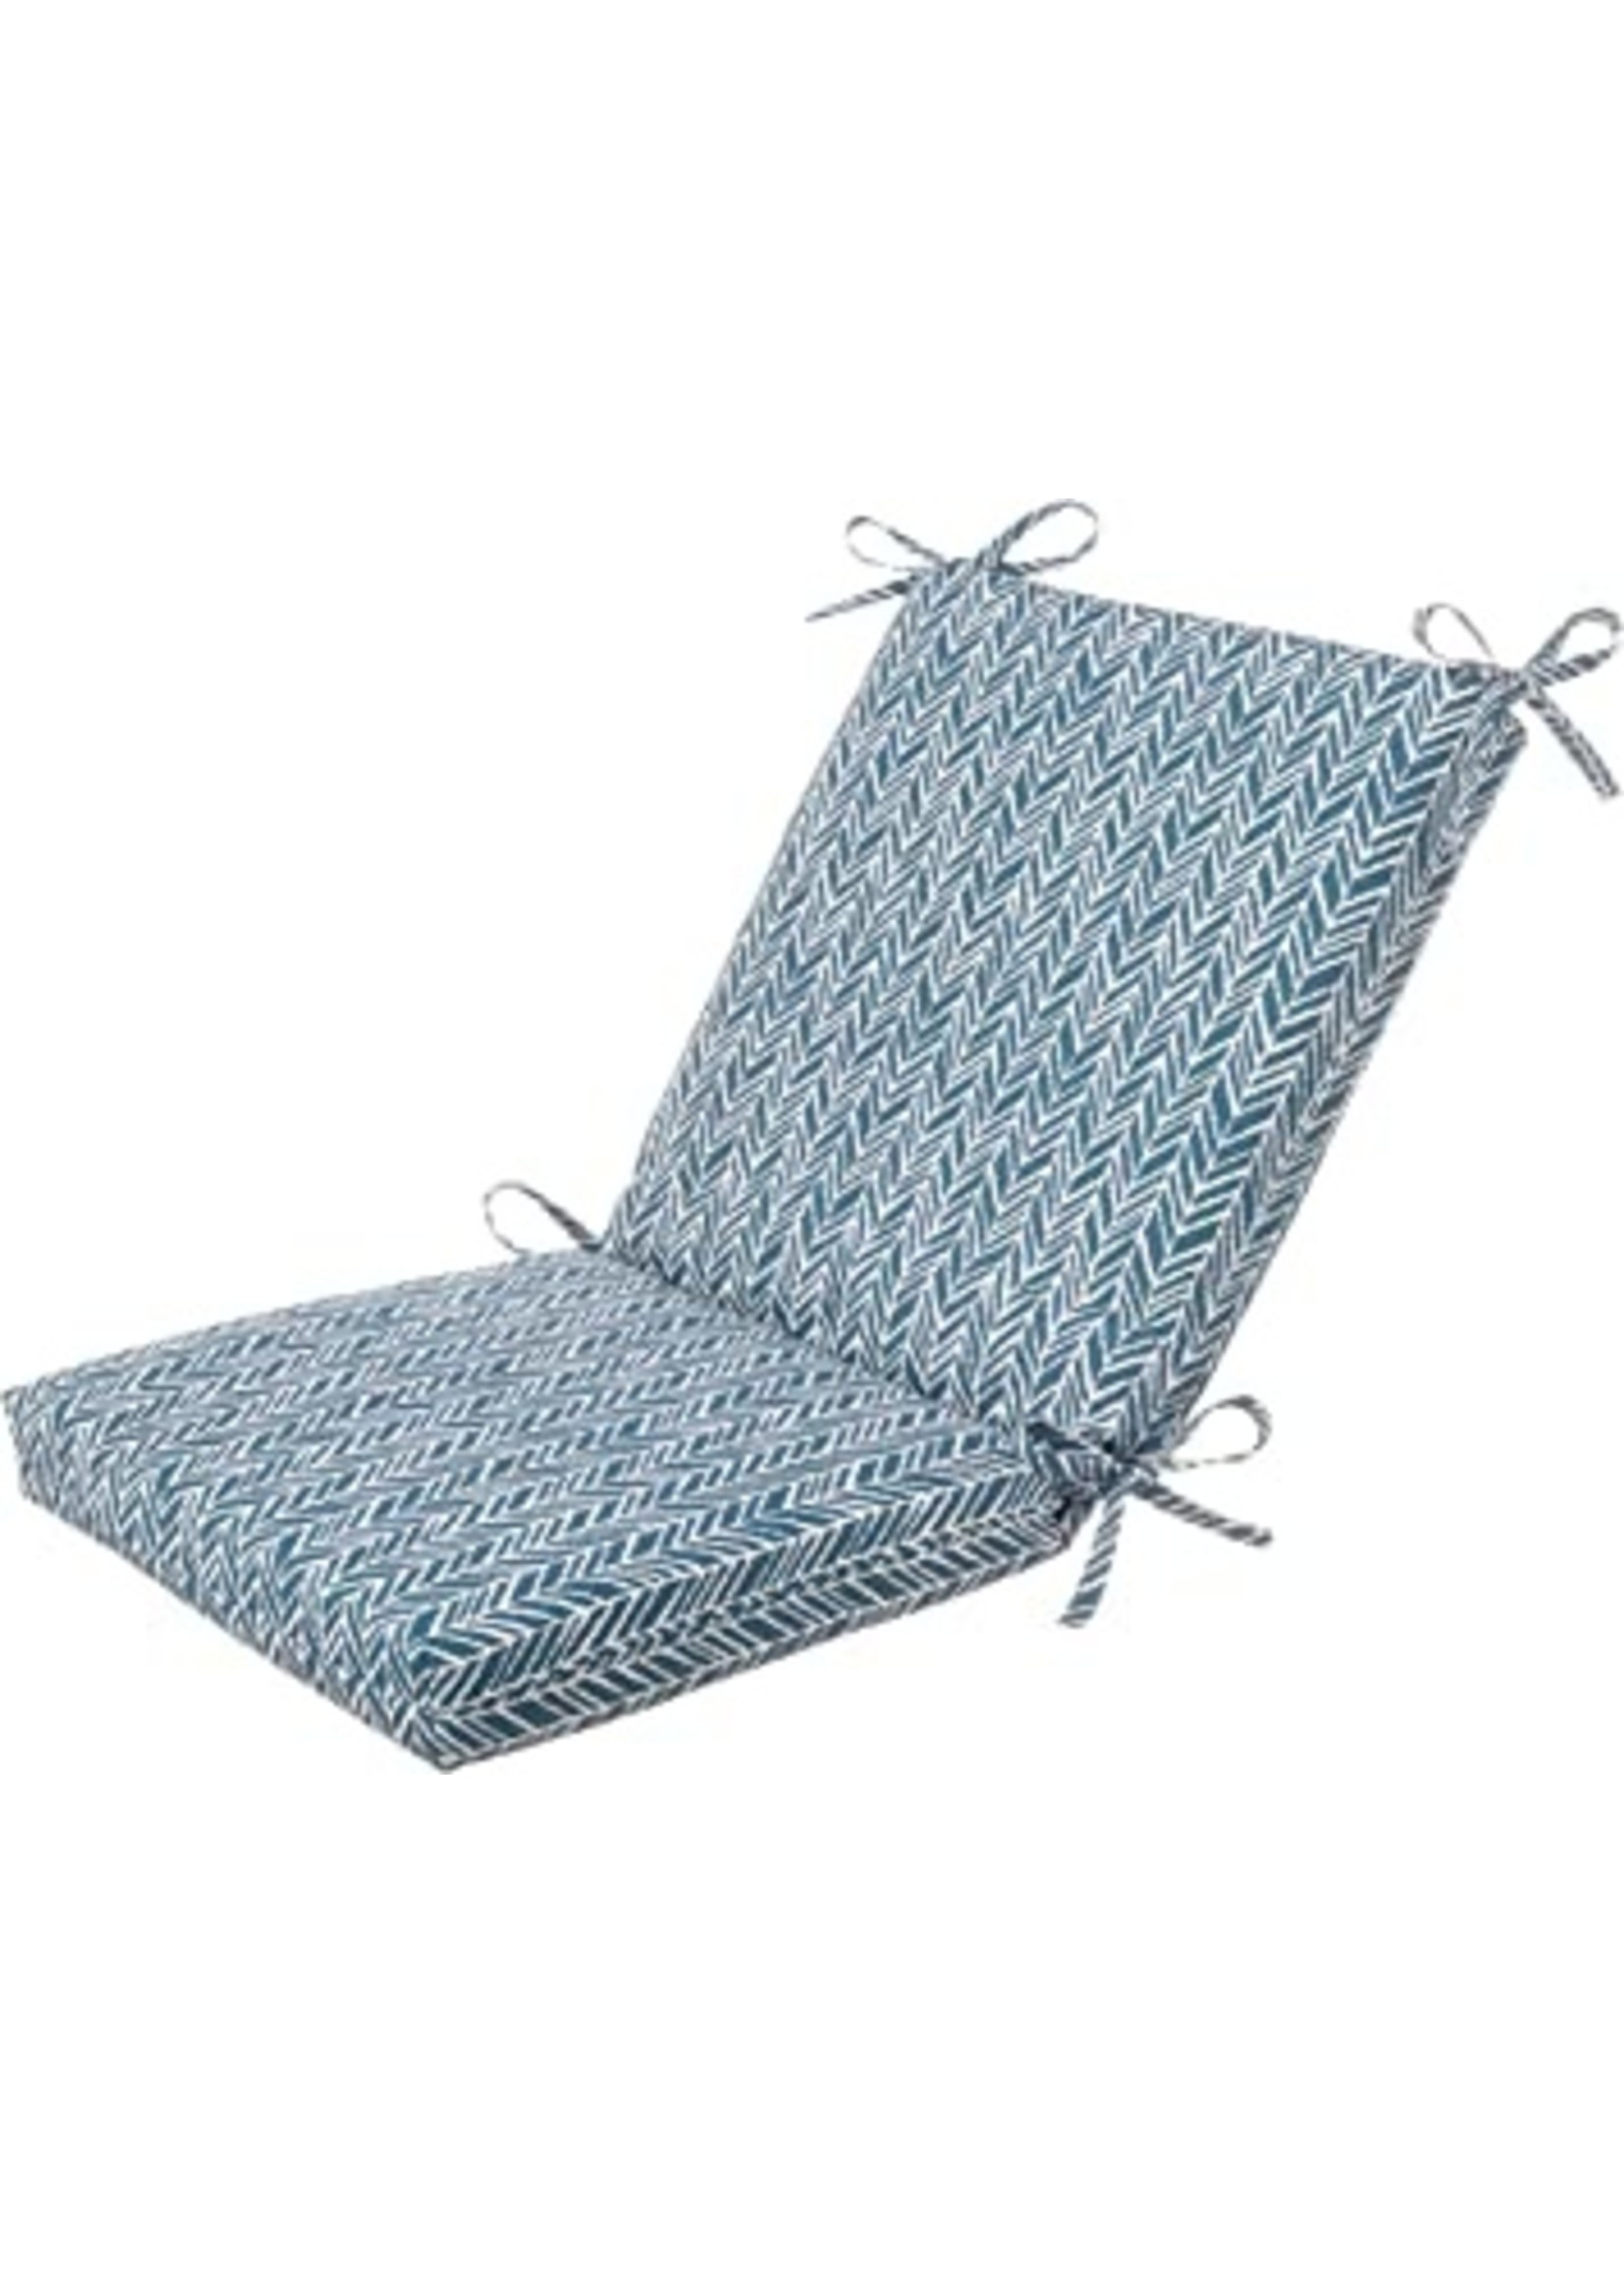 *Dining Chair Cushion - Set of 4 - Blue